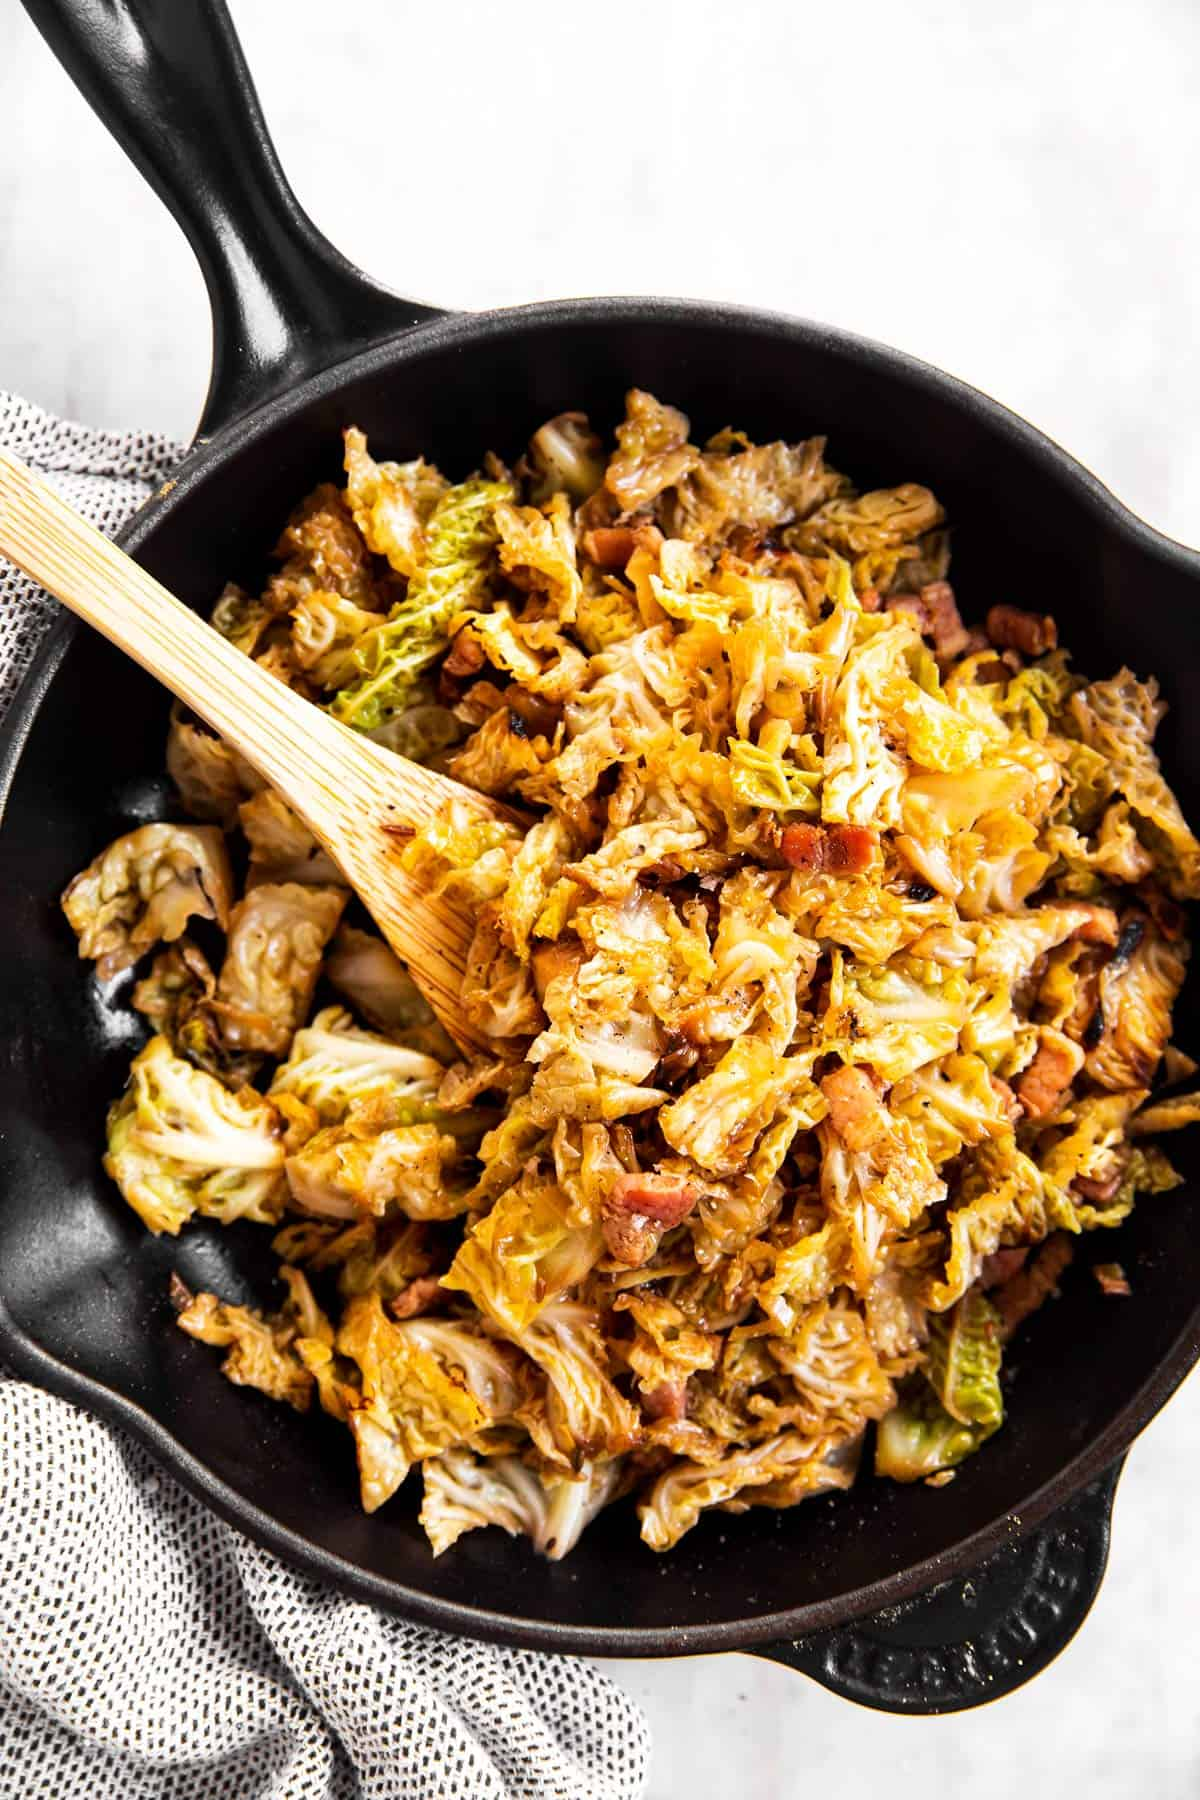 overhead view of black cast iron skillet with braised cabbage inside